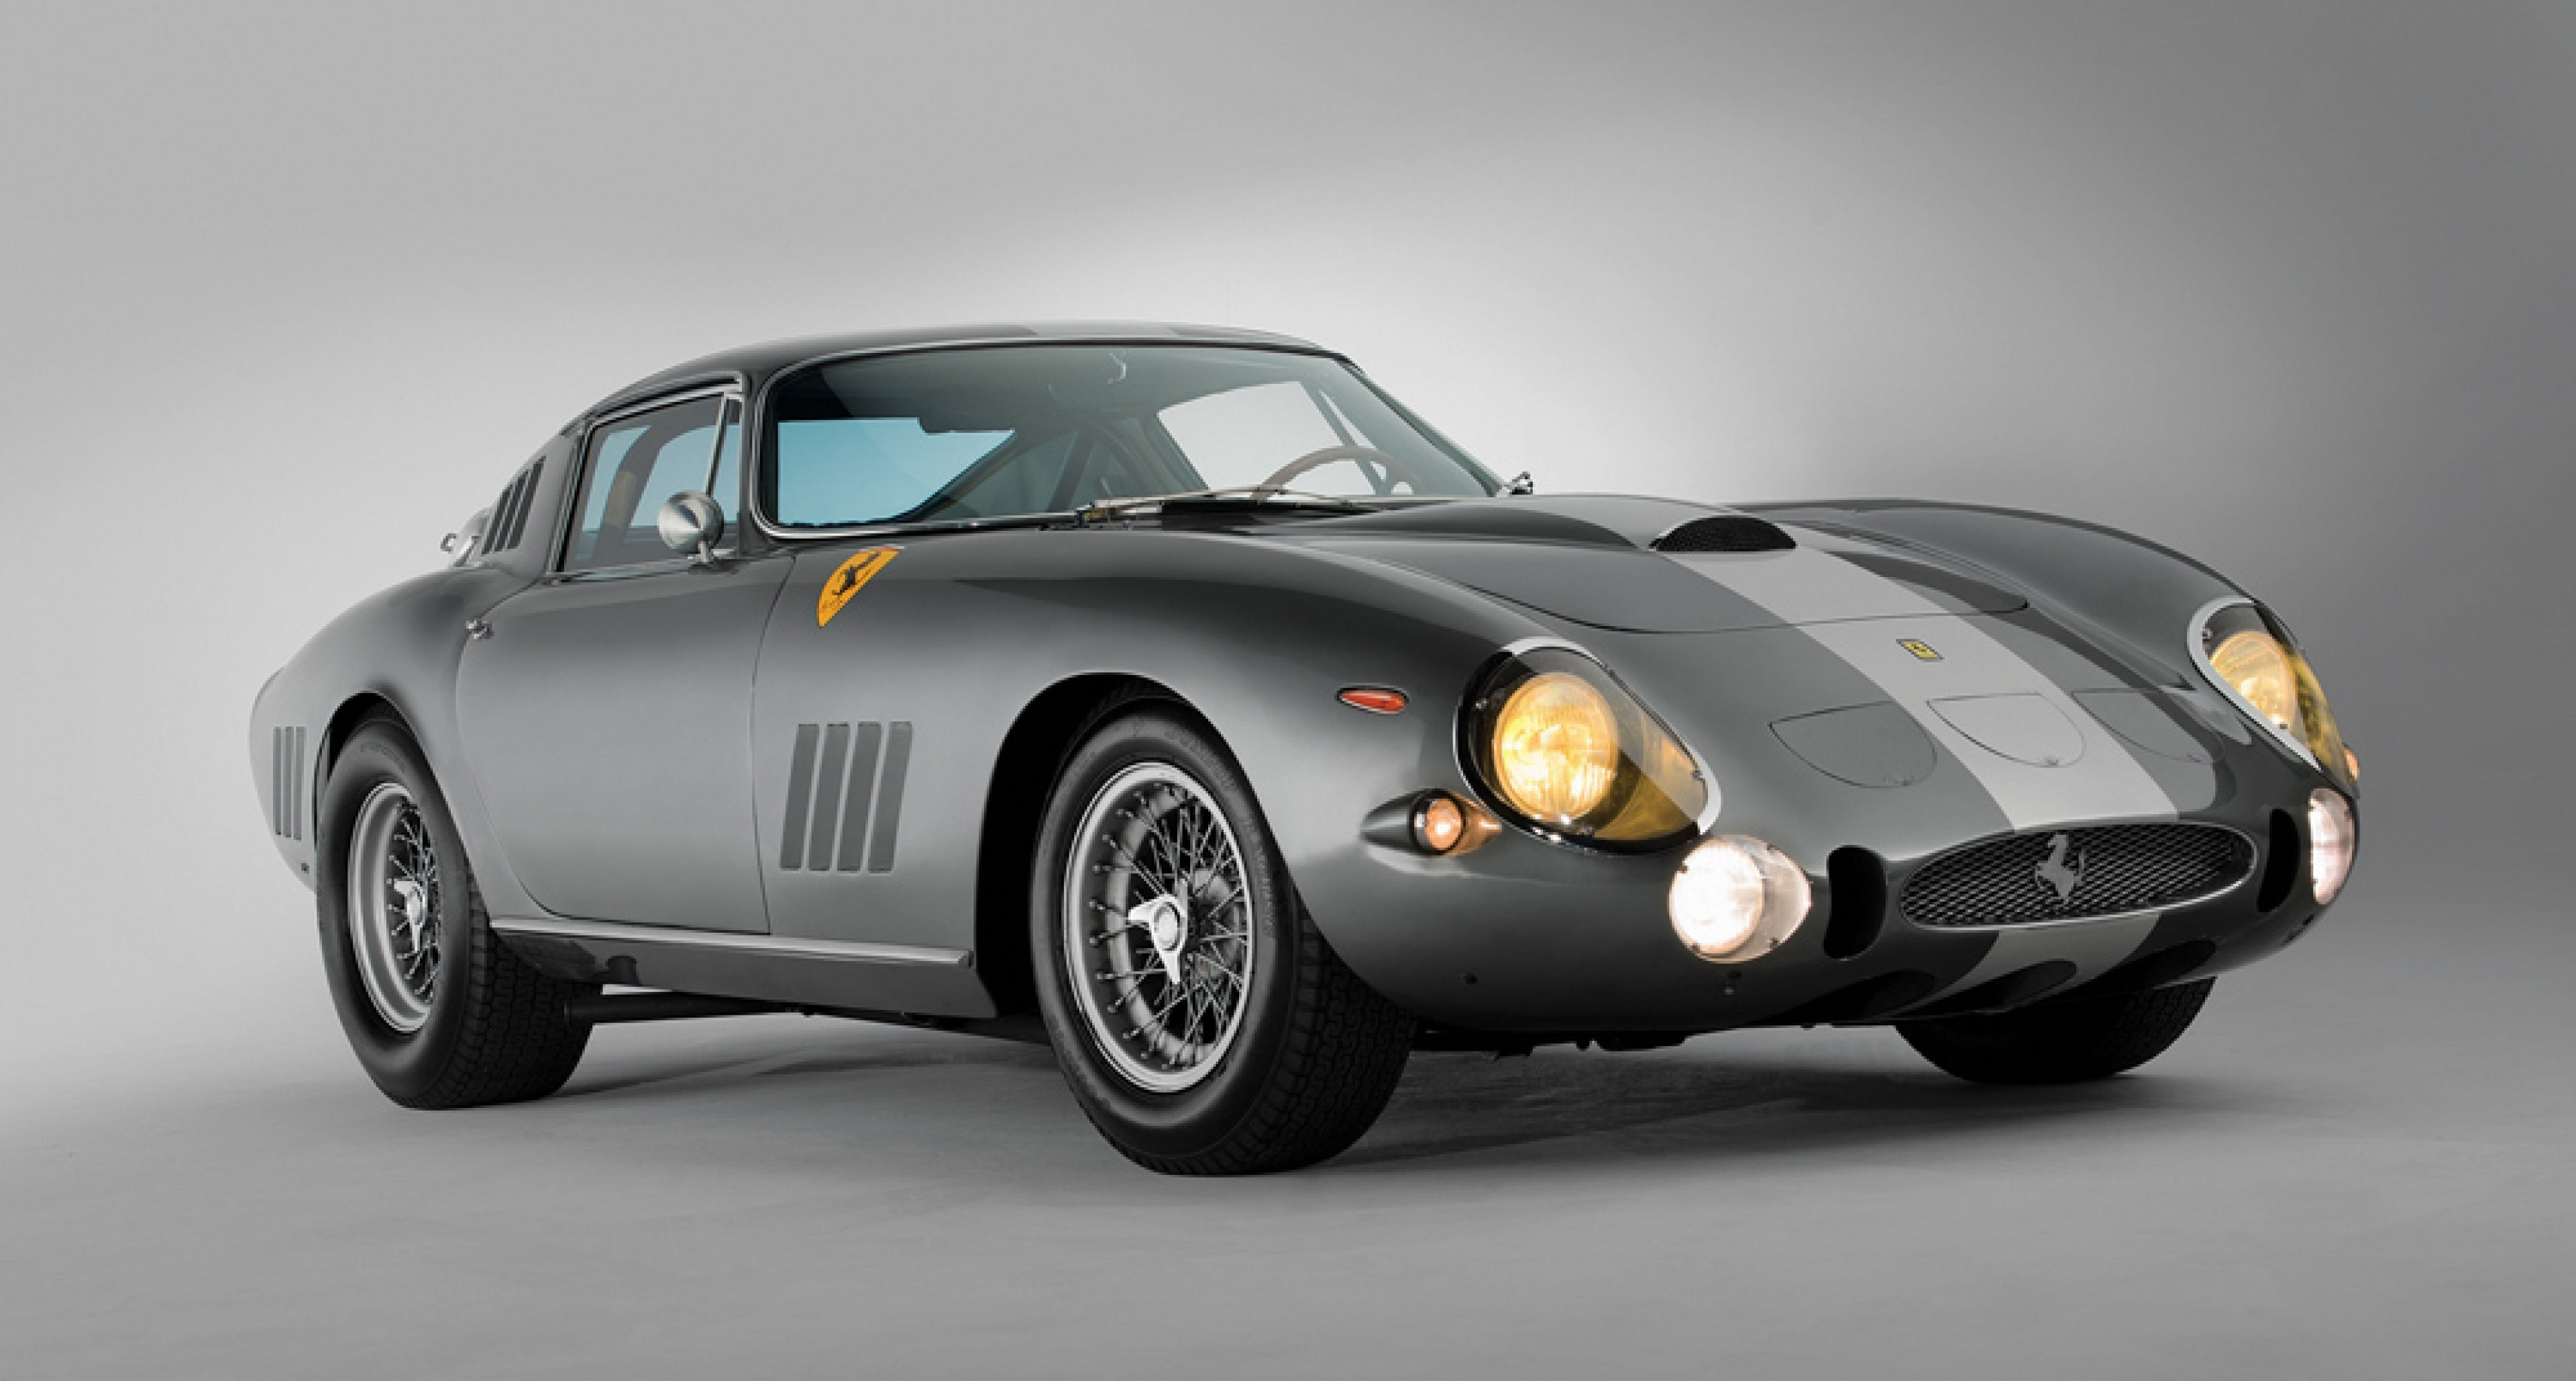 1964 Ferrari 275 GTB/C Speciale, sold by RM Auctions in August 2014 for $ 26,400,000.